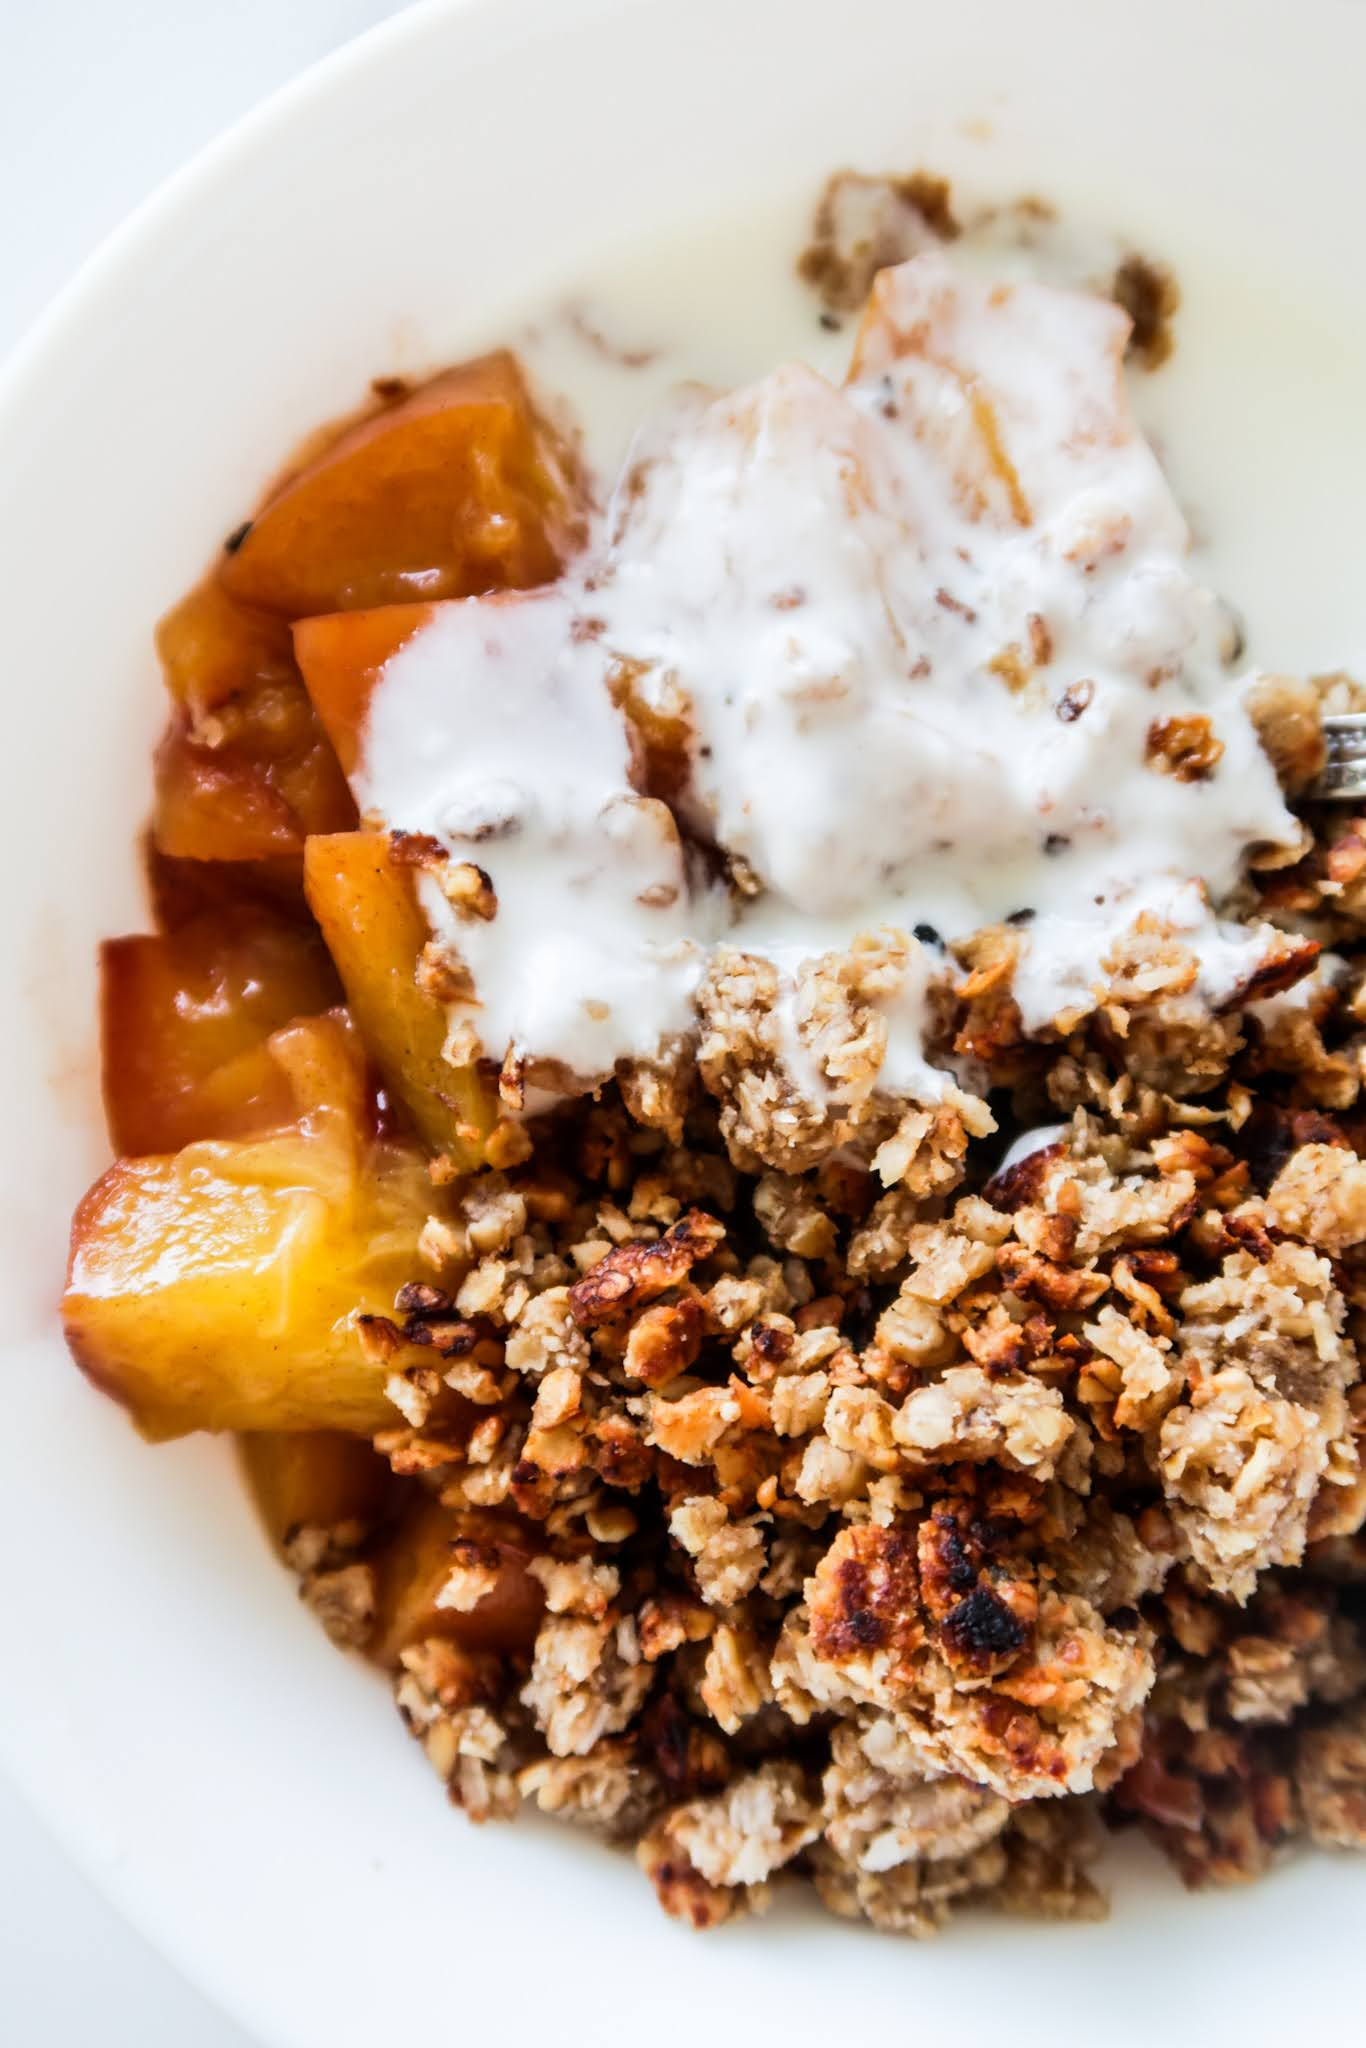 15-minute healthy peach crumble. This healthy version of peach cobbler is super tasty and easy to make on the stovetop for an easy healthy breakfast. There is no refined sugar in this breakfast recipe, it's made with oats, gluten-free and vegan when you use maple syrup not honey, easy to meal prep too and great for clean eating.